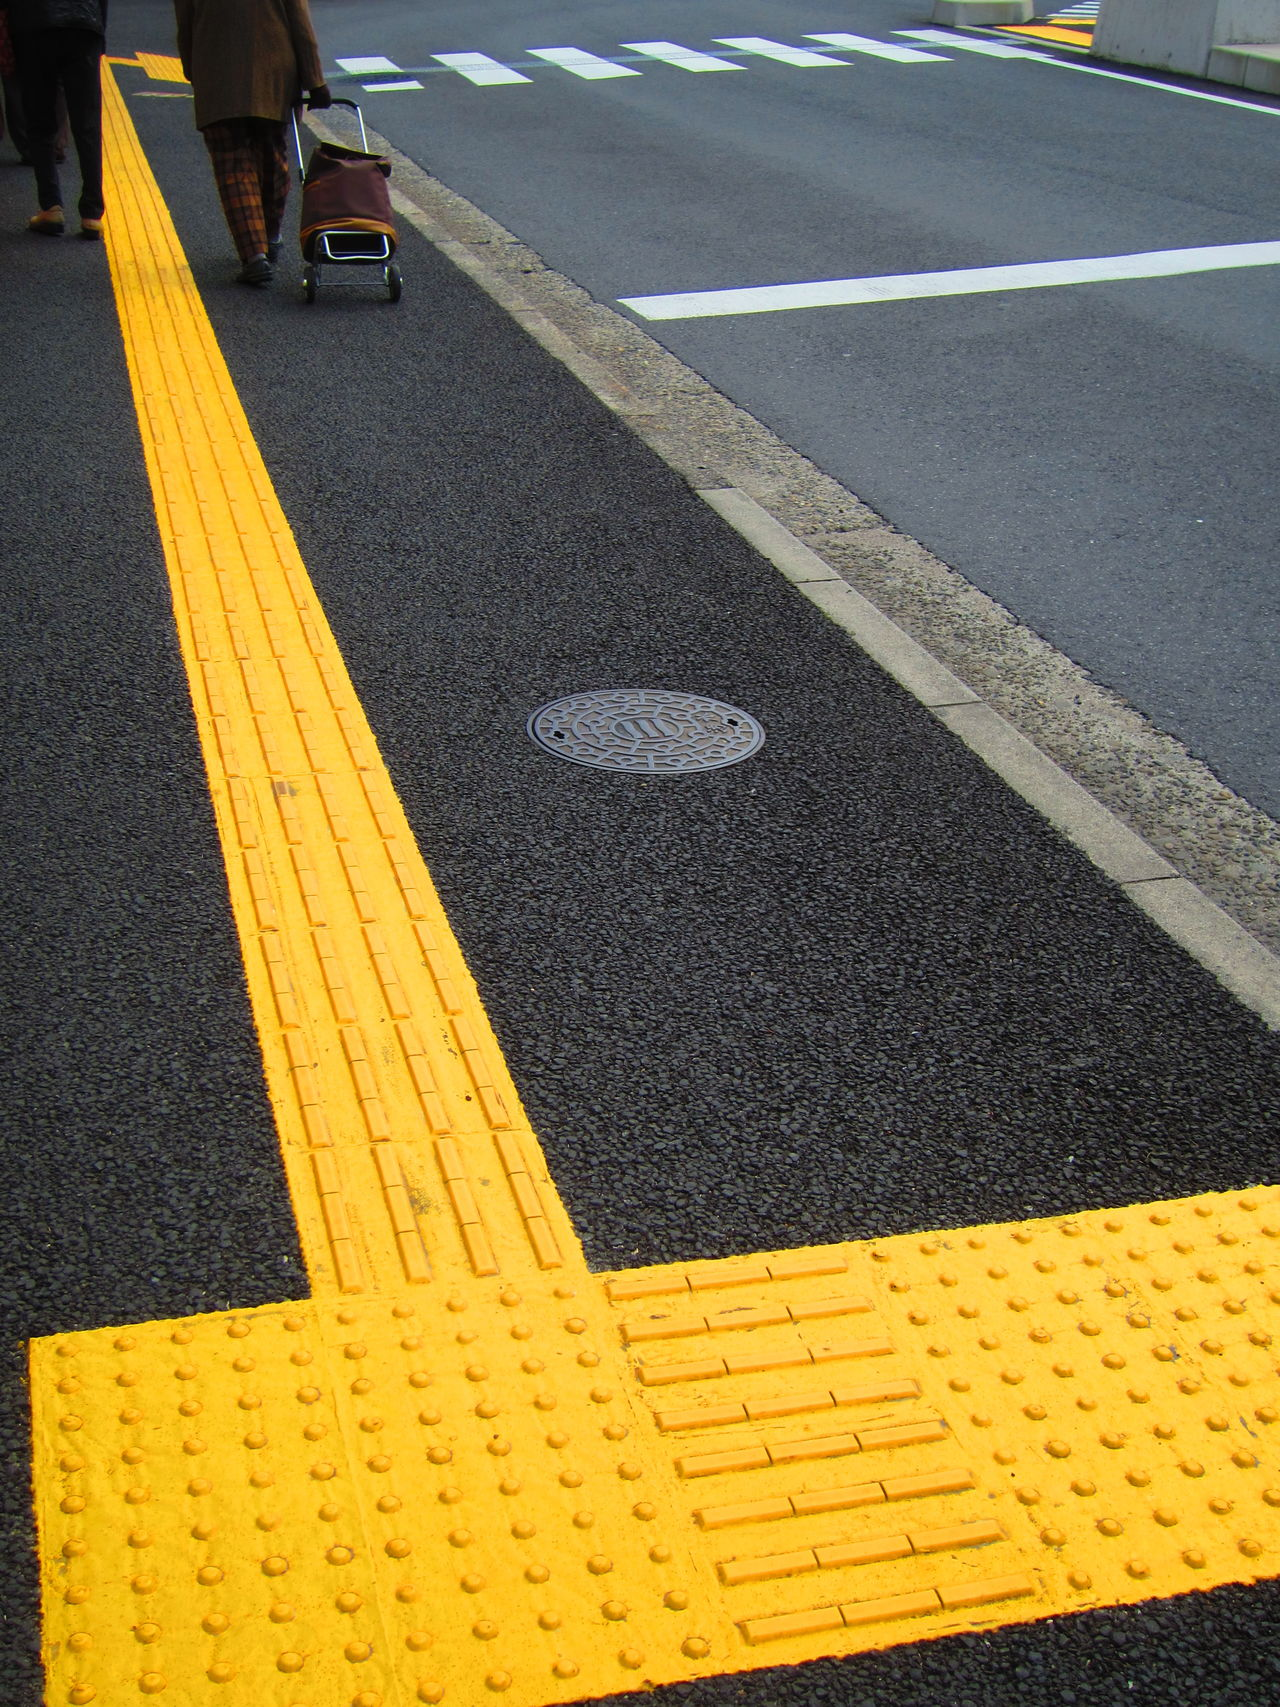 Tactile Paving Asphalt Barrier Free Blind Bright Colors Bumpy Bumpy Paving Bumpy Road Day Disability  Disability Awareness Japan Japanese Street Outdoors Road Tactile Paving Tactile Paving For The Blind Visually Impaired Yellow Color Access Disabled Access Disabled Feel Feel Your Way Let's Go. Together. EyeEm Selects